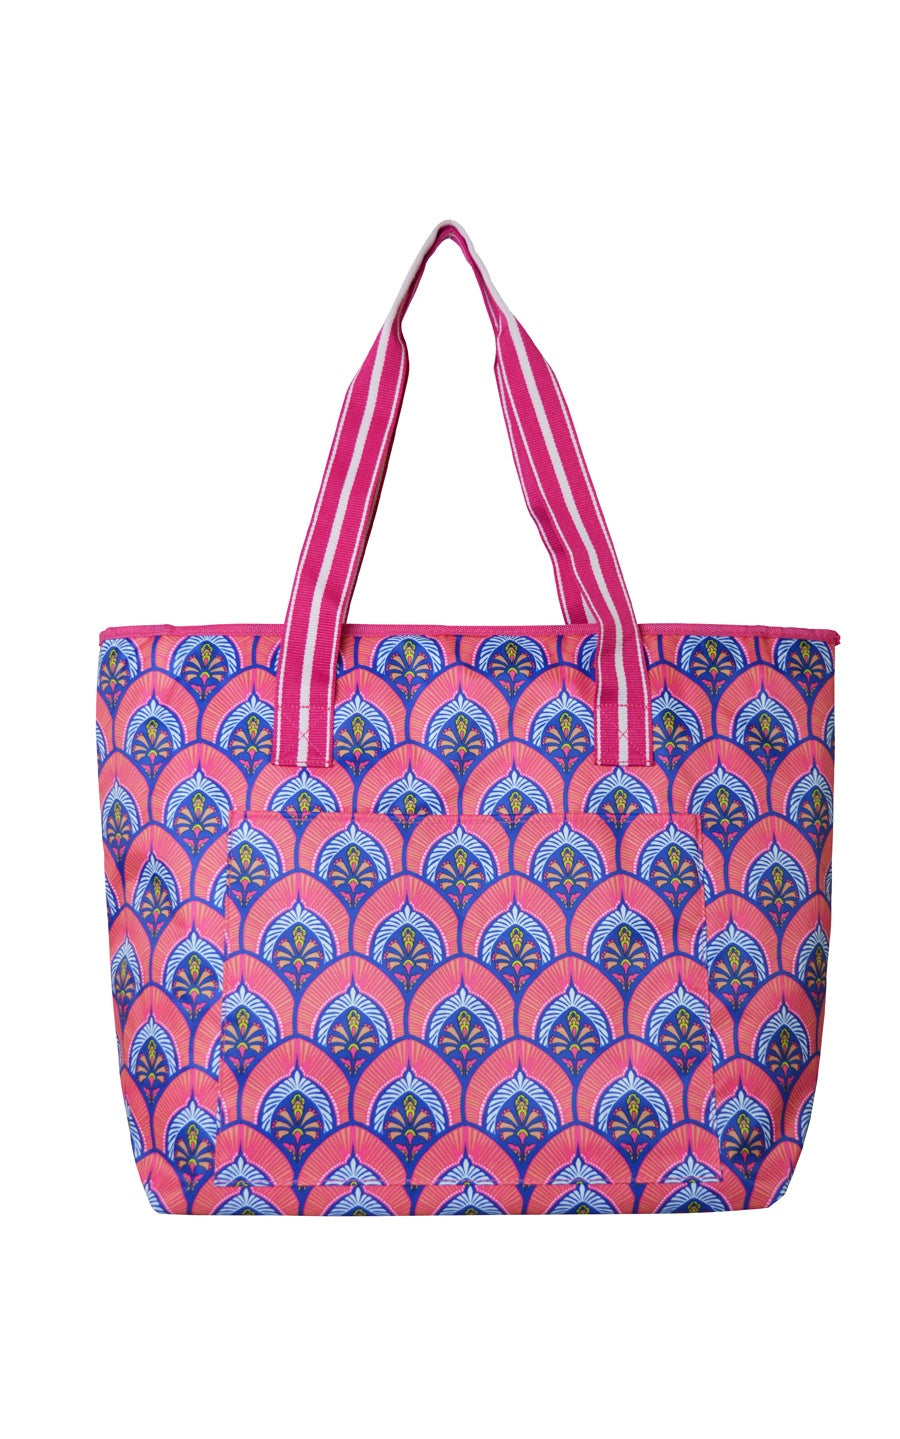 Bali Blooms Cooler Tote - FINAL SALE